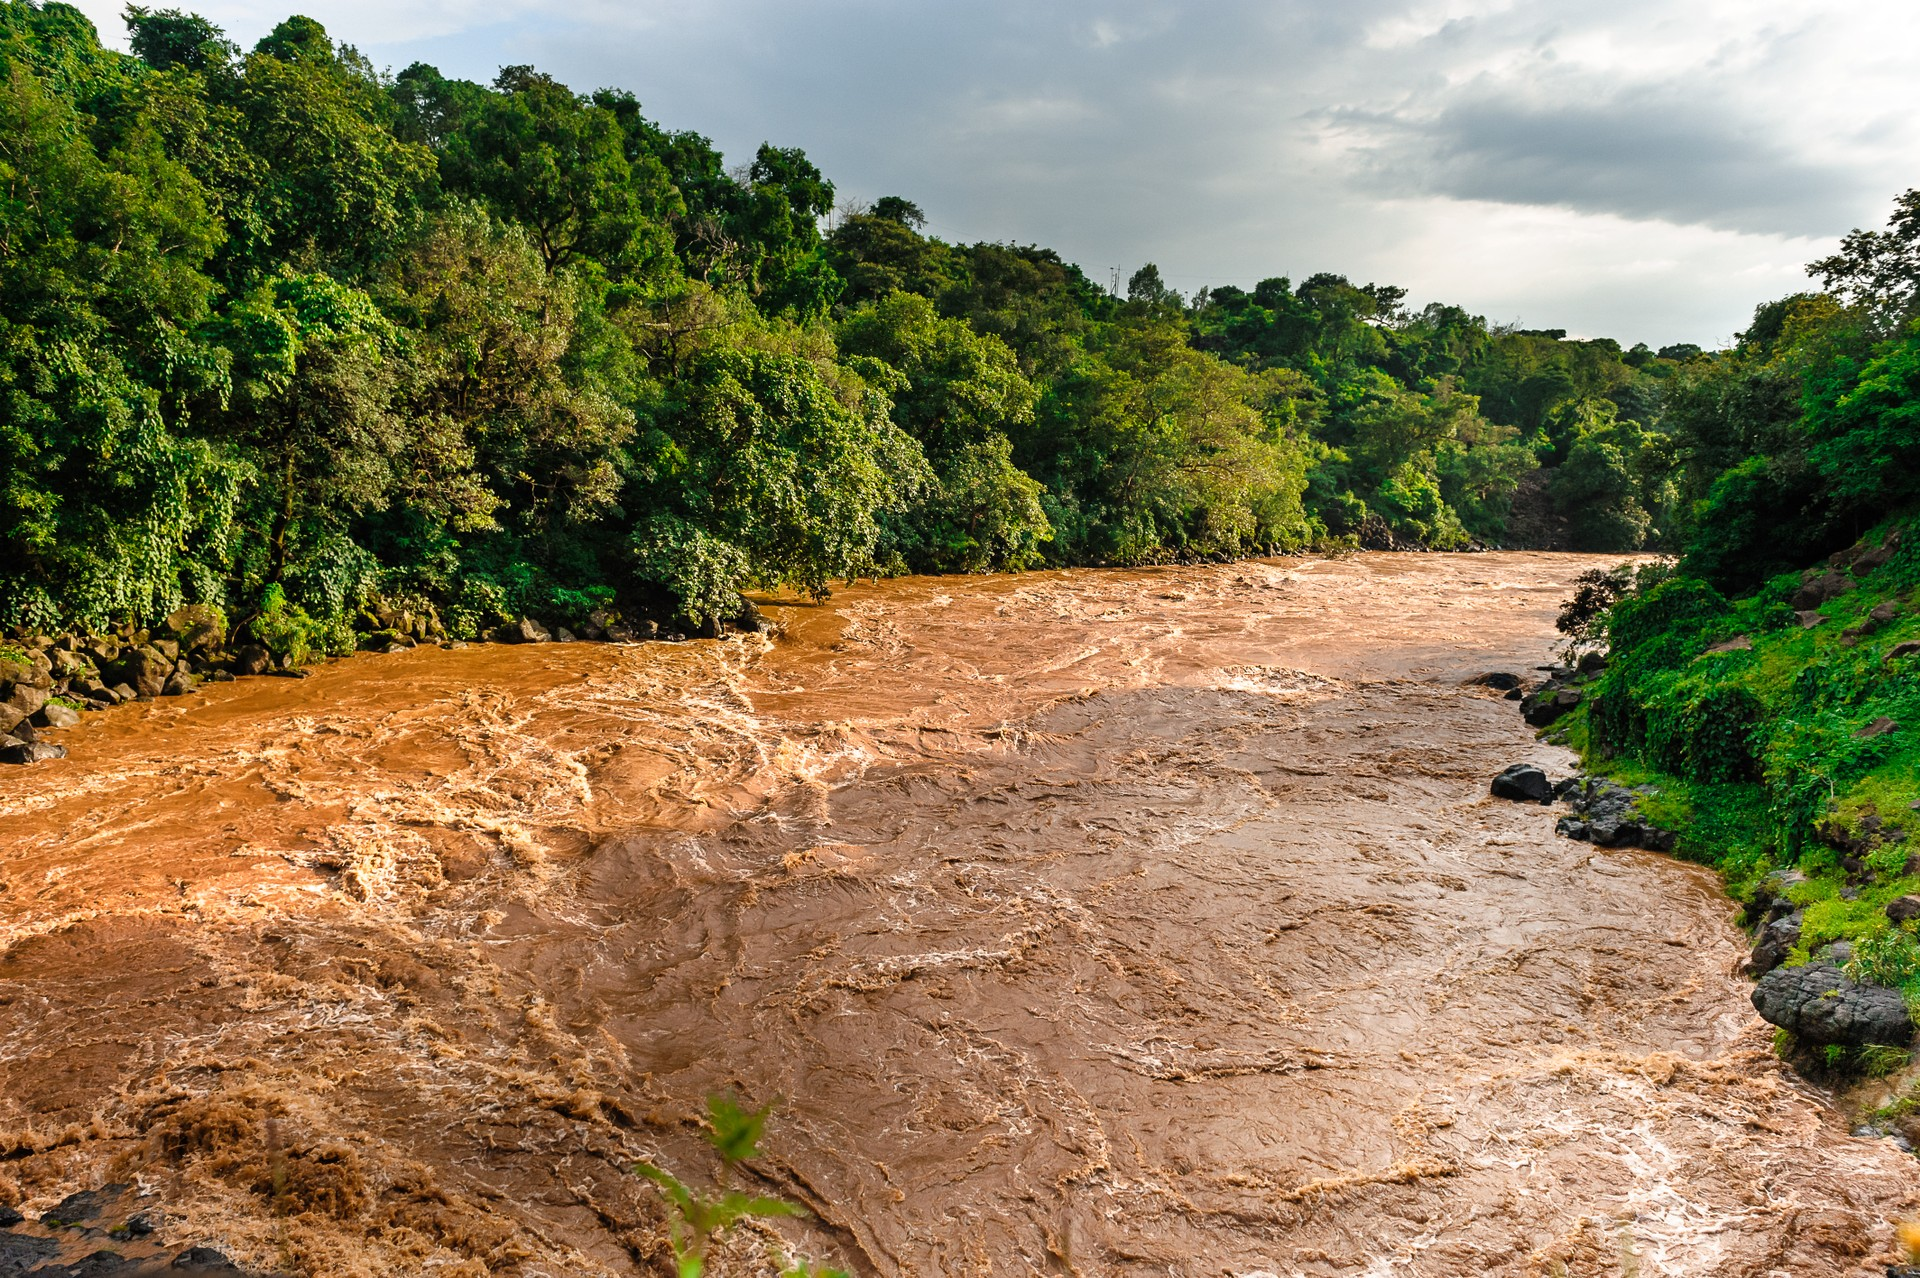 Section of the River Nile